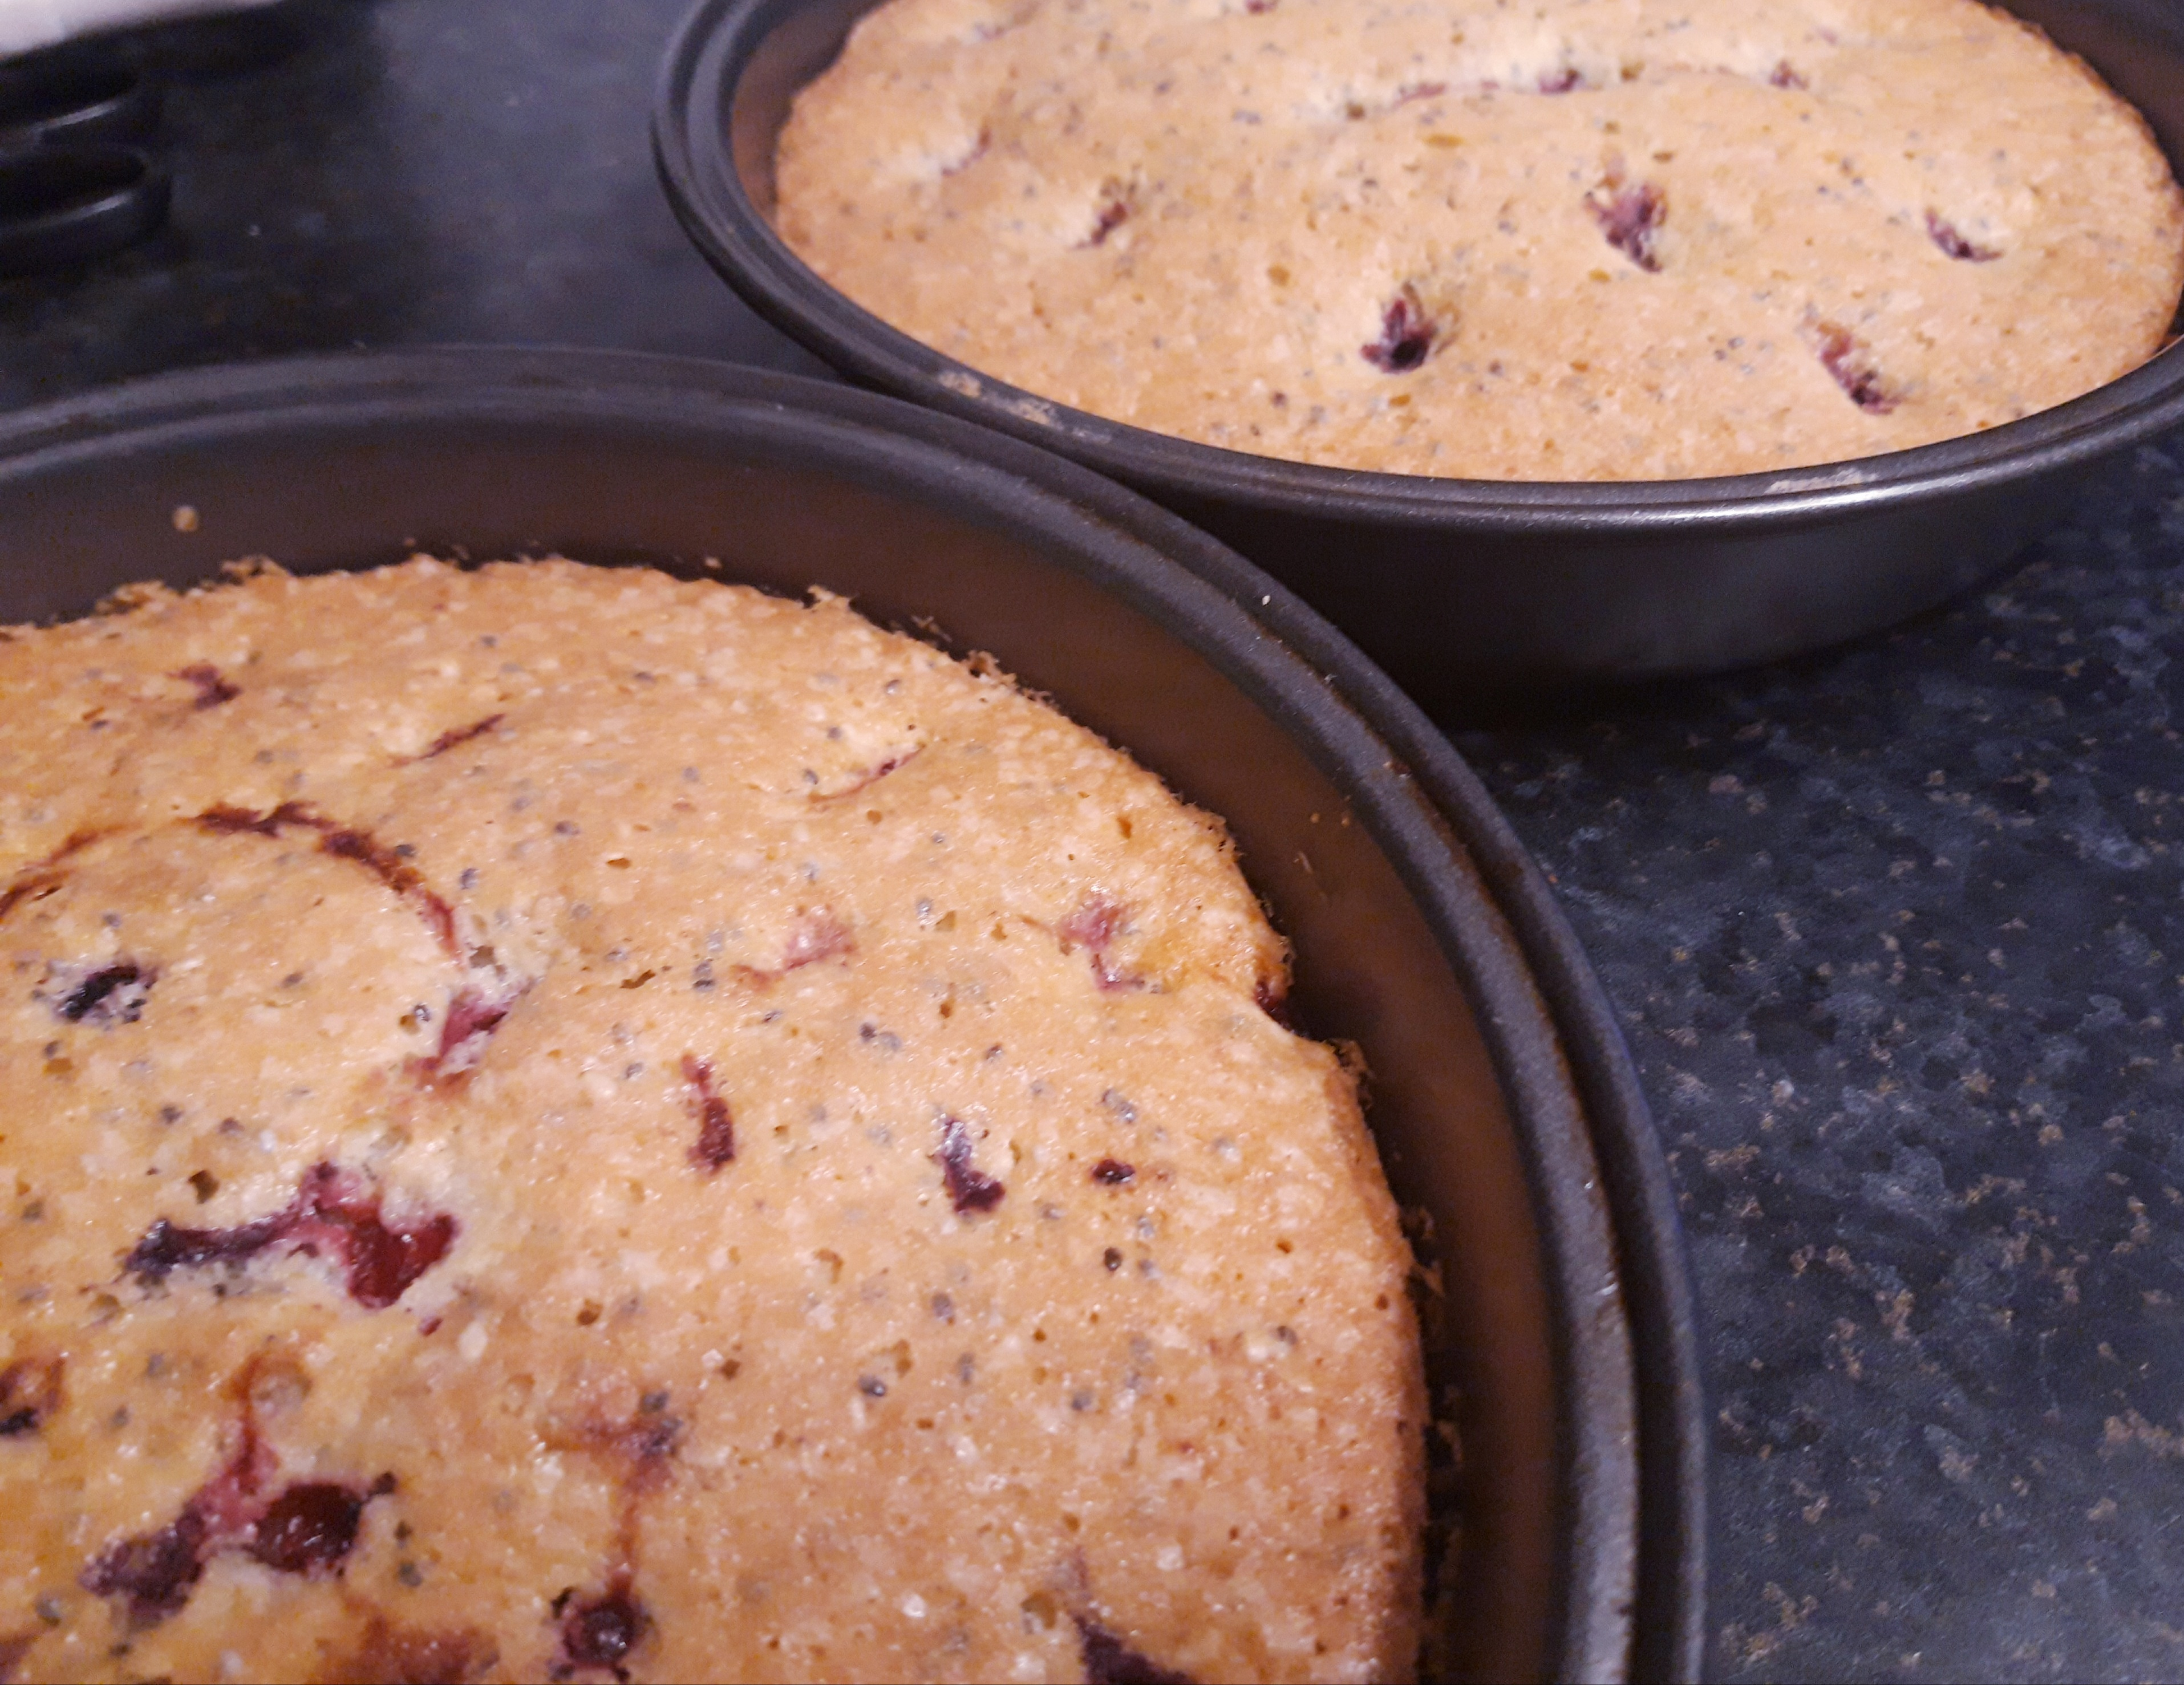 berry cakes straight out of the oven